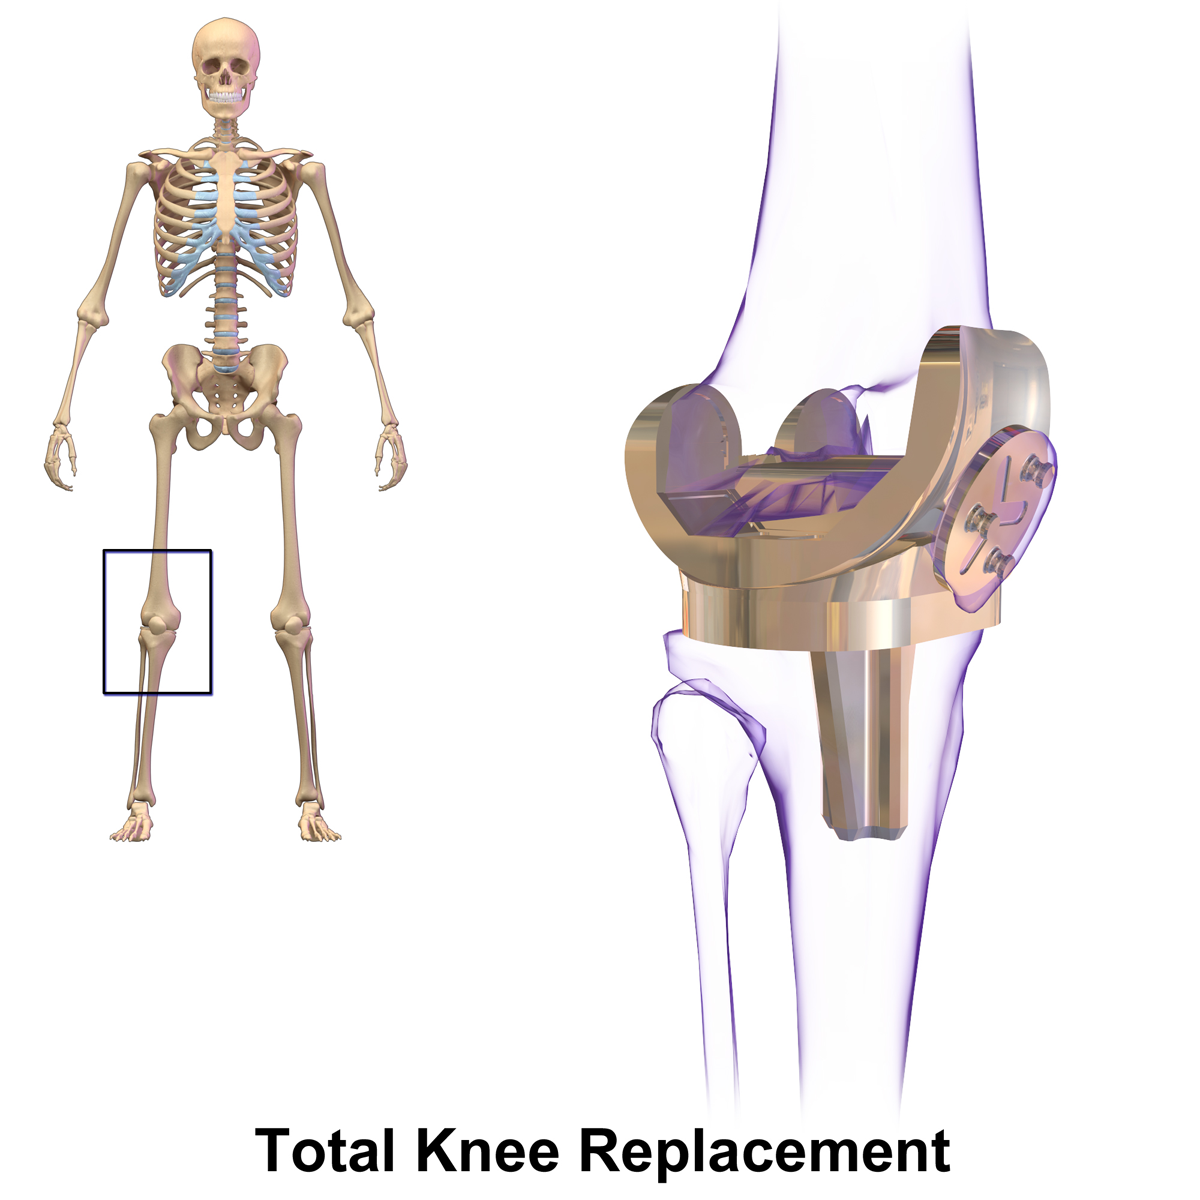 Computer Navigation Technology for Knee Replacement Surgery in India